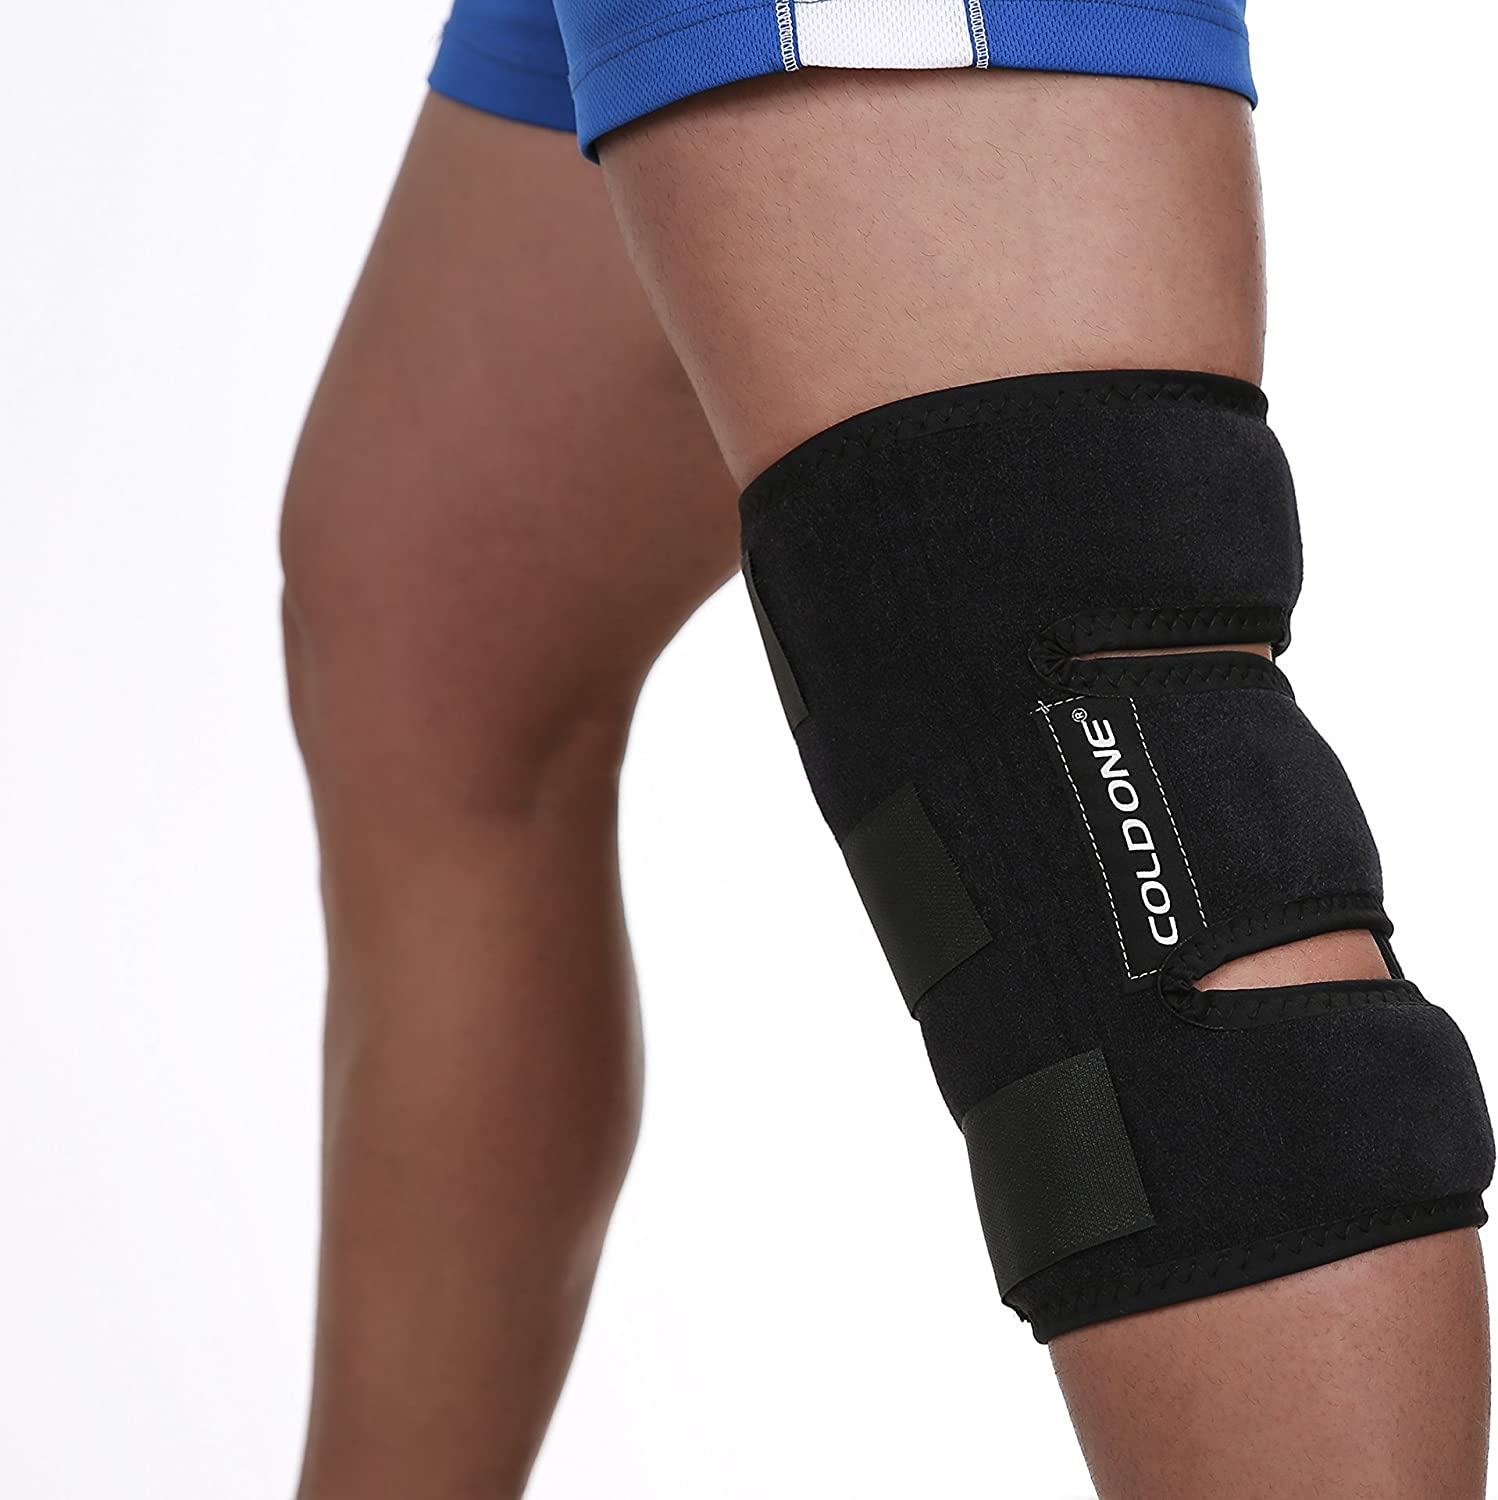 Knee Ice Pack Soft Brace + Compression for Post Knee Surgery, Knee Injuries, Fast Pain Relief, 360º Coverage, Oº C 15-20 Minutes Icing Recommended by Ortho MDs as Safe and Effective. Universal Size, USA